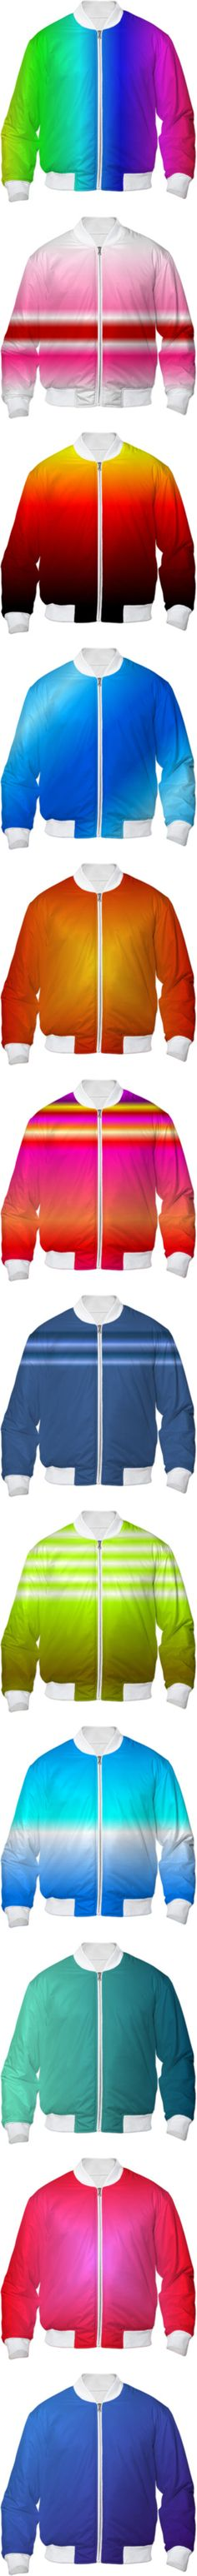 * MY #BOMBER #JACKETS FOR SALE * by artist4god-rose-santuci-sofranko on Polyvore featuring polyvore, fashion, clothing, outerwear, jackets, bomber, bomber jacket, coats, coloring, flight jacket, print bomber jacket, pattern jacket, flight bomber jacket, floral, flowers, garden, rose, print jacket, floral bomber jacket, pink bomber jacket, blouson jacket, red flight jacket, ocean, sea, blue jackets, blue bomber jacket, orange jacket, green jacket, green bomber jacket, purple jacket, green…